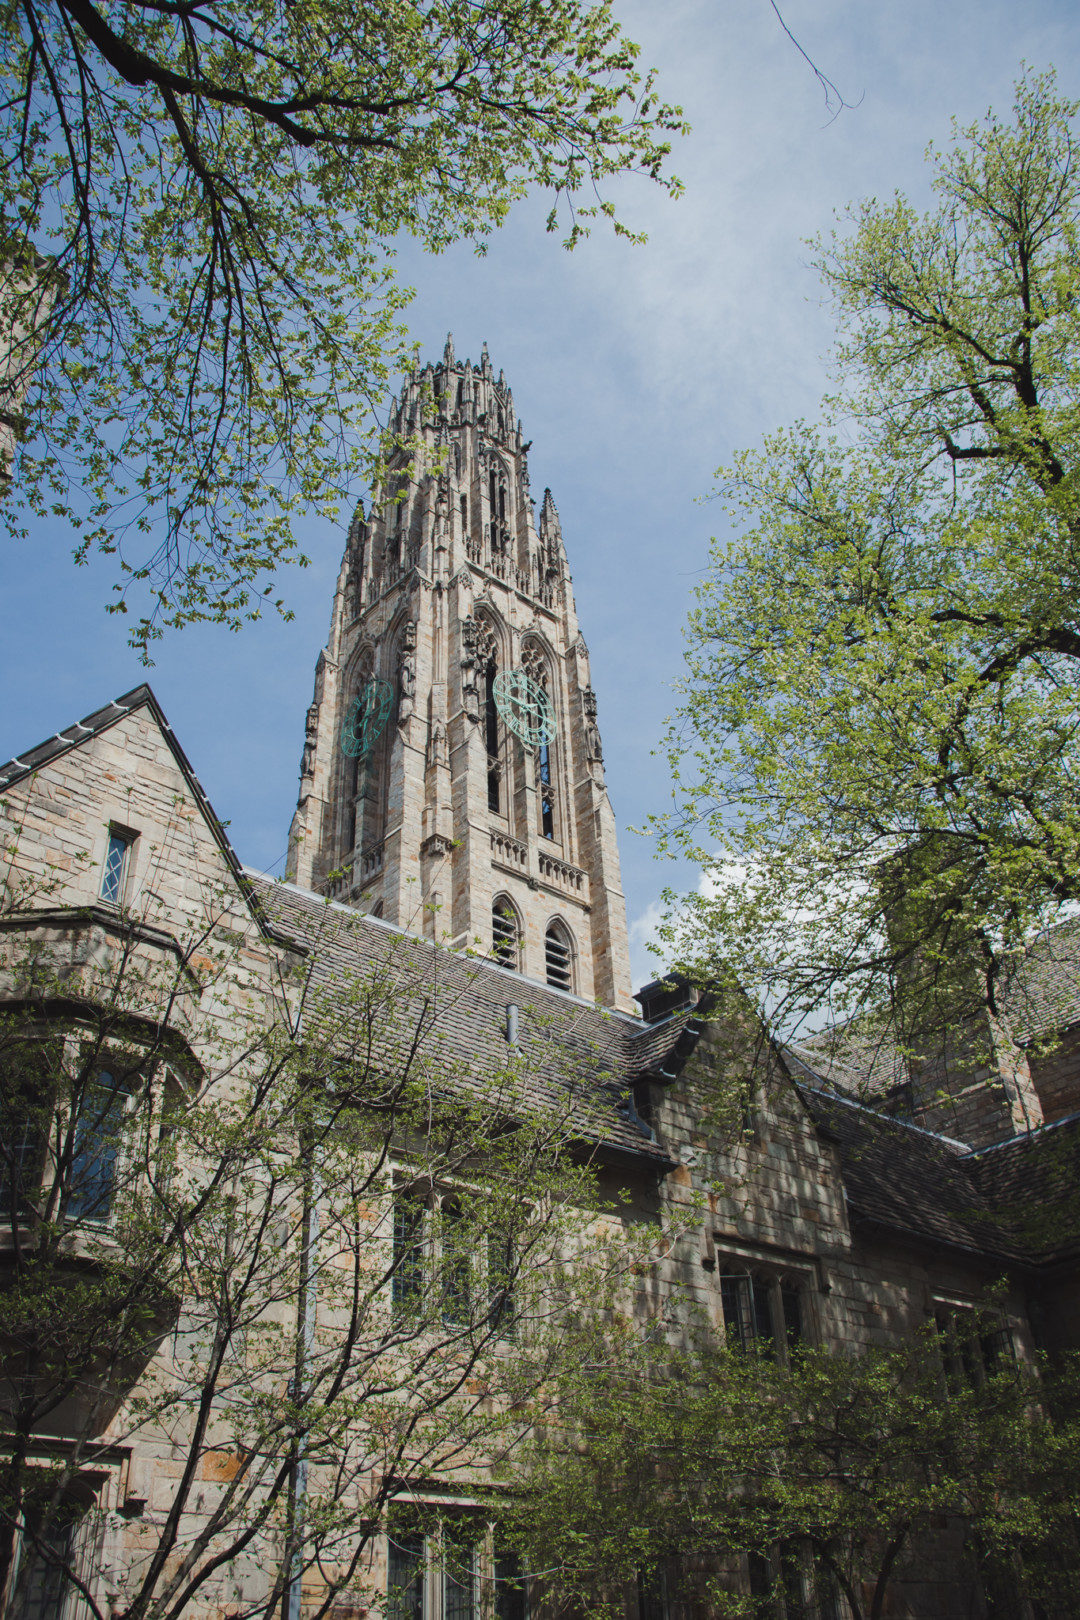 Harkness Tower at Yale University in the spring time